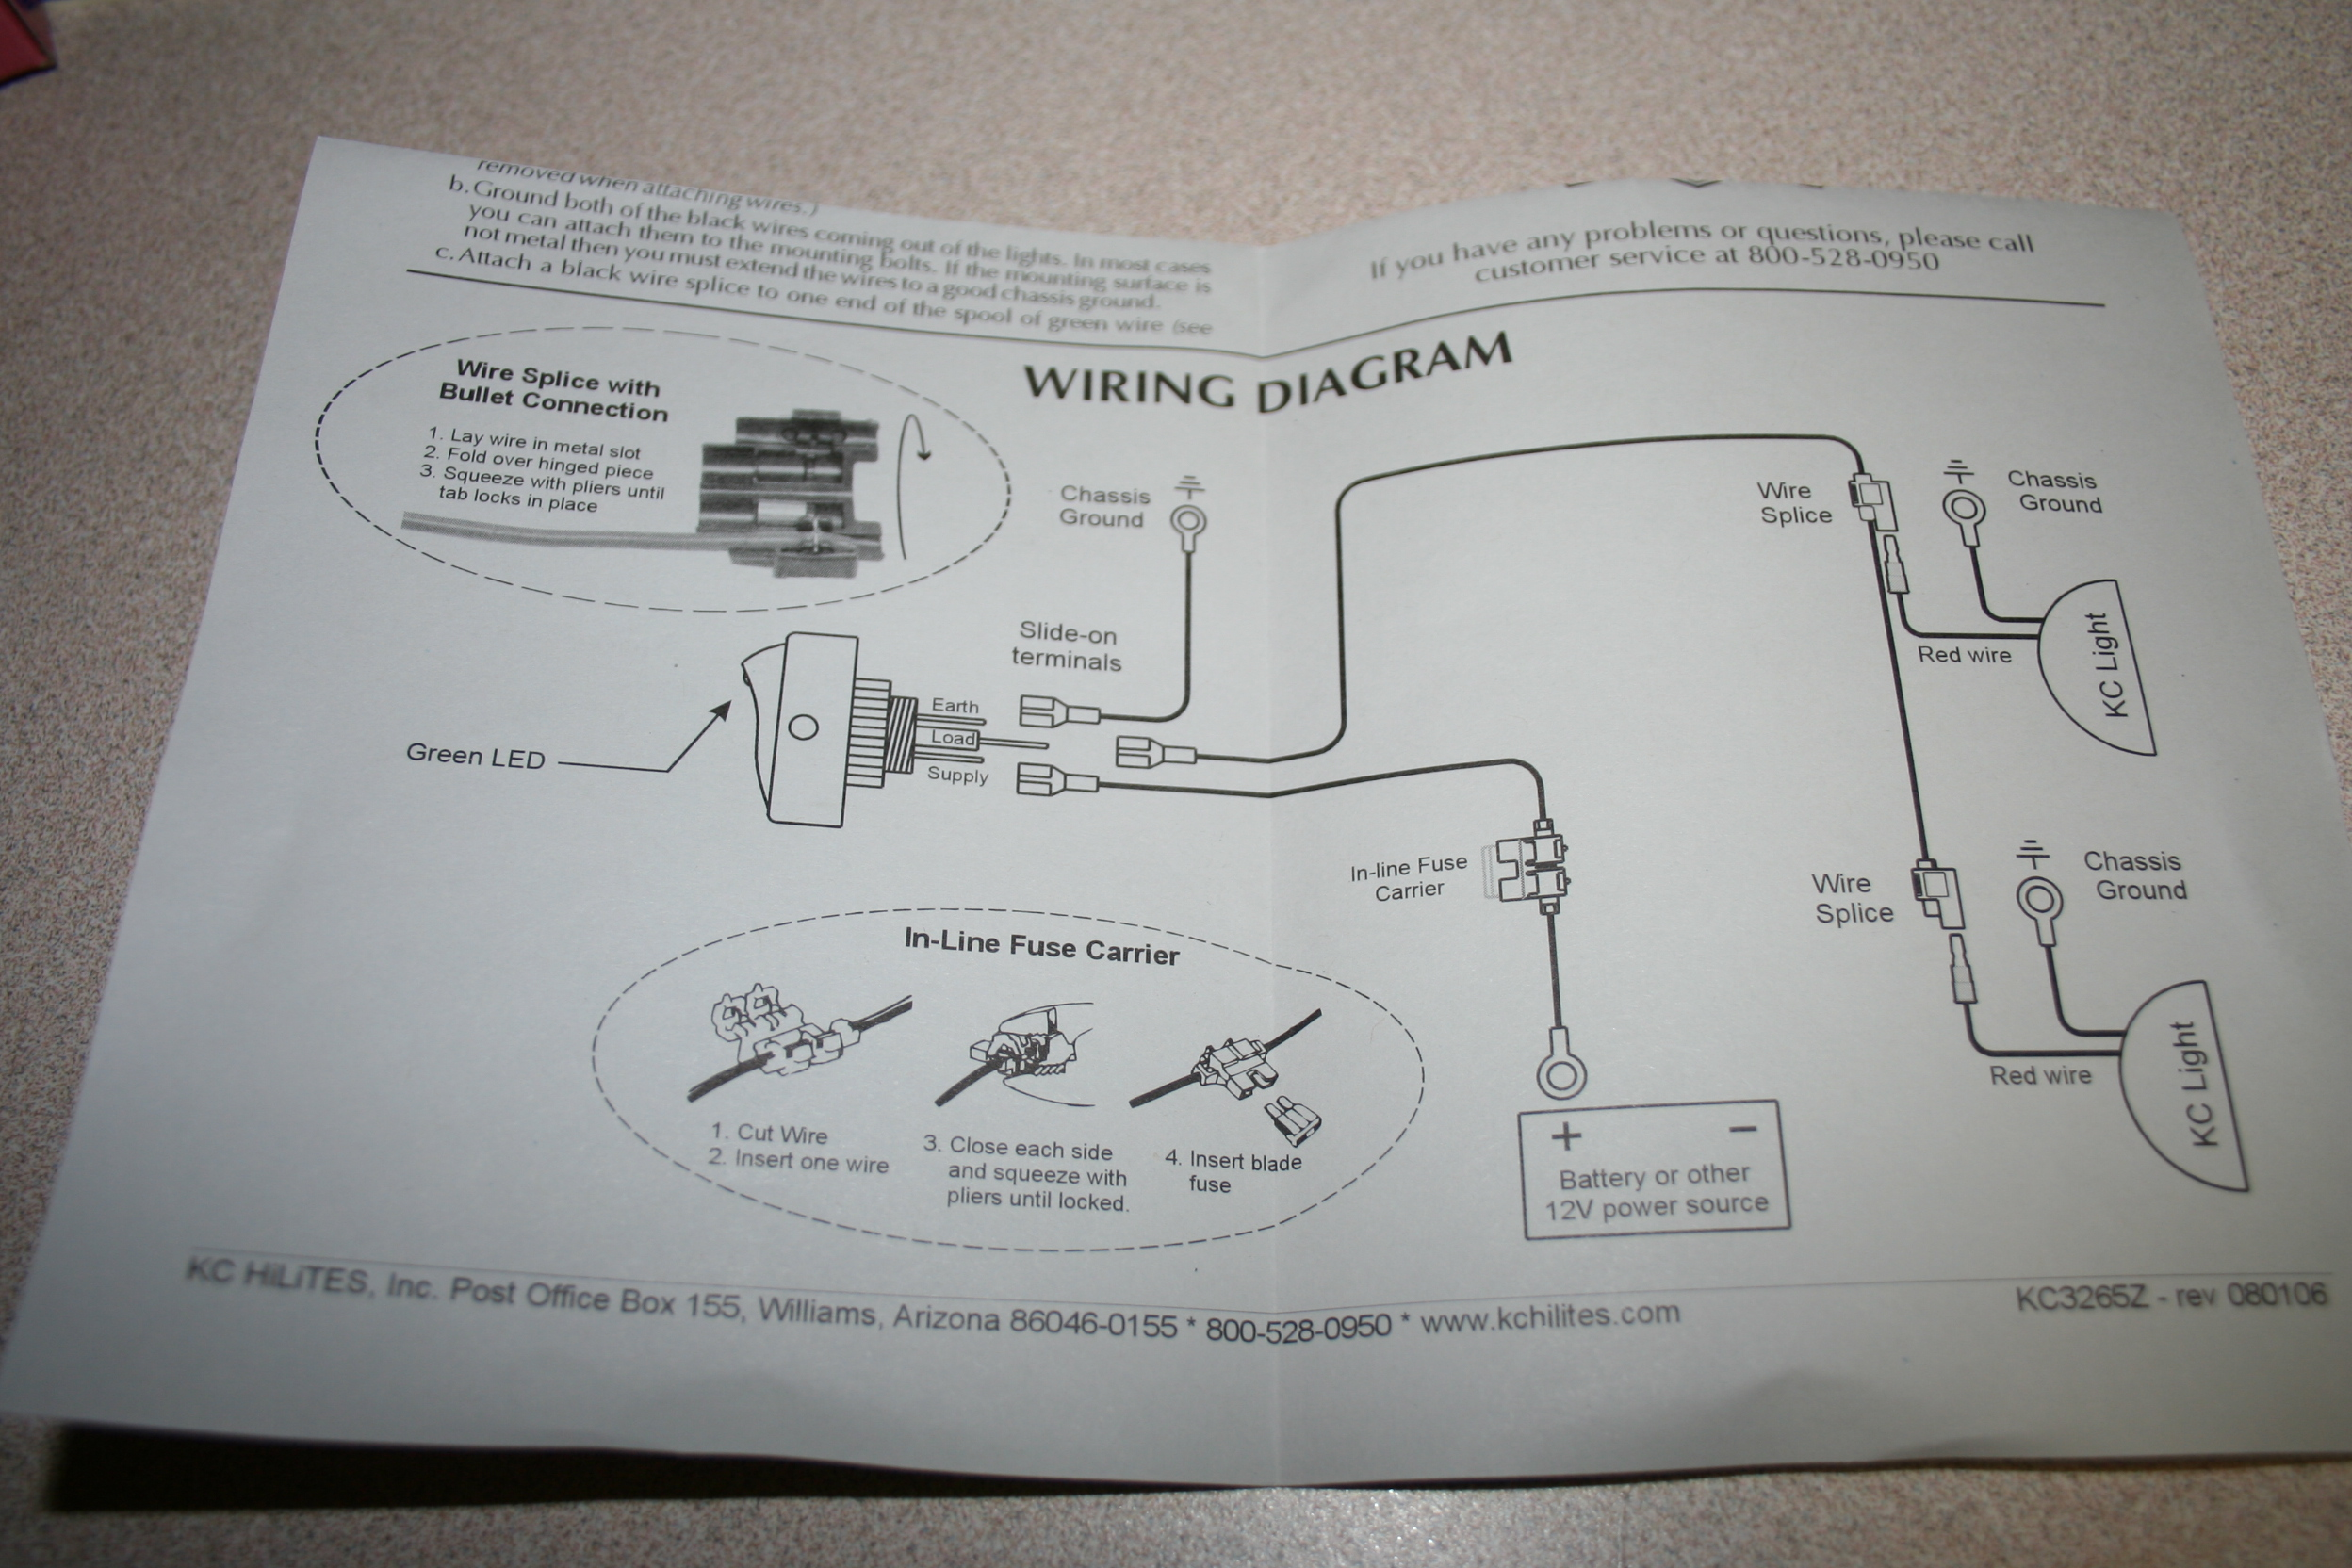 hid kc light wiring diagram off road lights wiring diagram off image wiring kc light wiring diagram kc wiring diagrams on